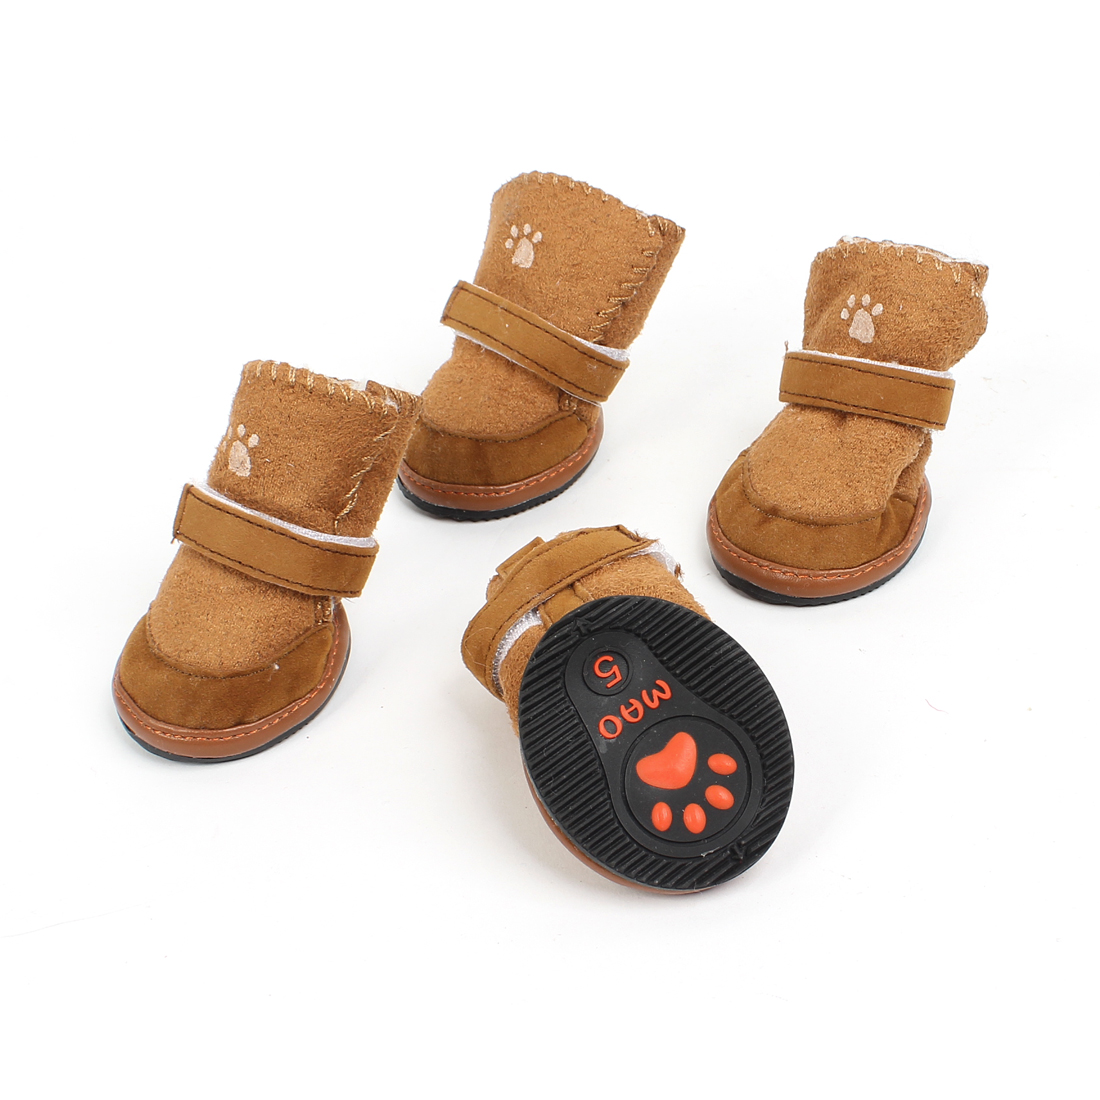 2 Pairs Brown Paw Printed Hook Loop Fastener Nonskid Sole Pet Dog Shoes Size S